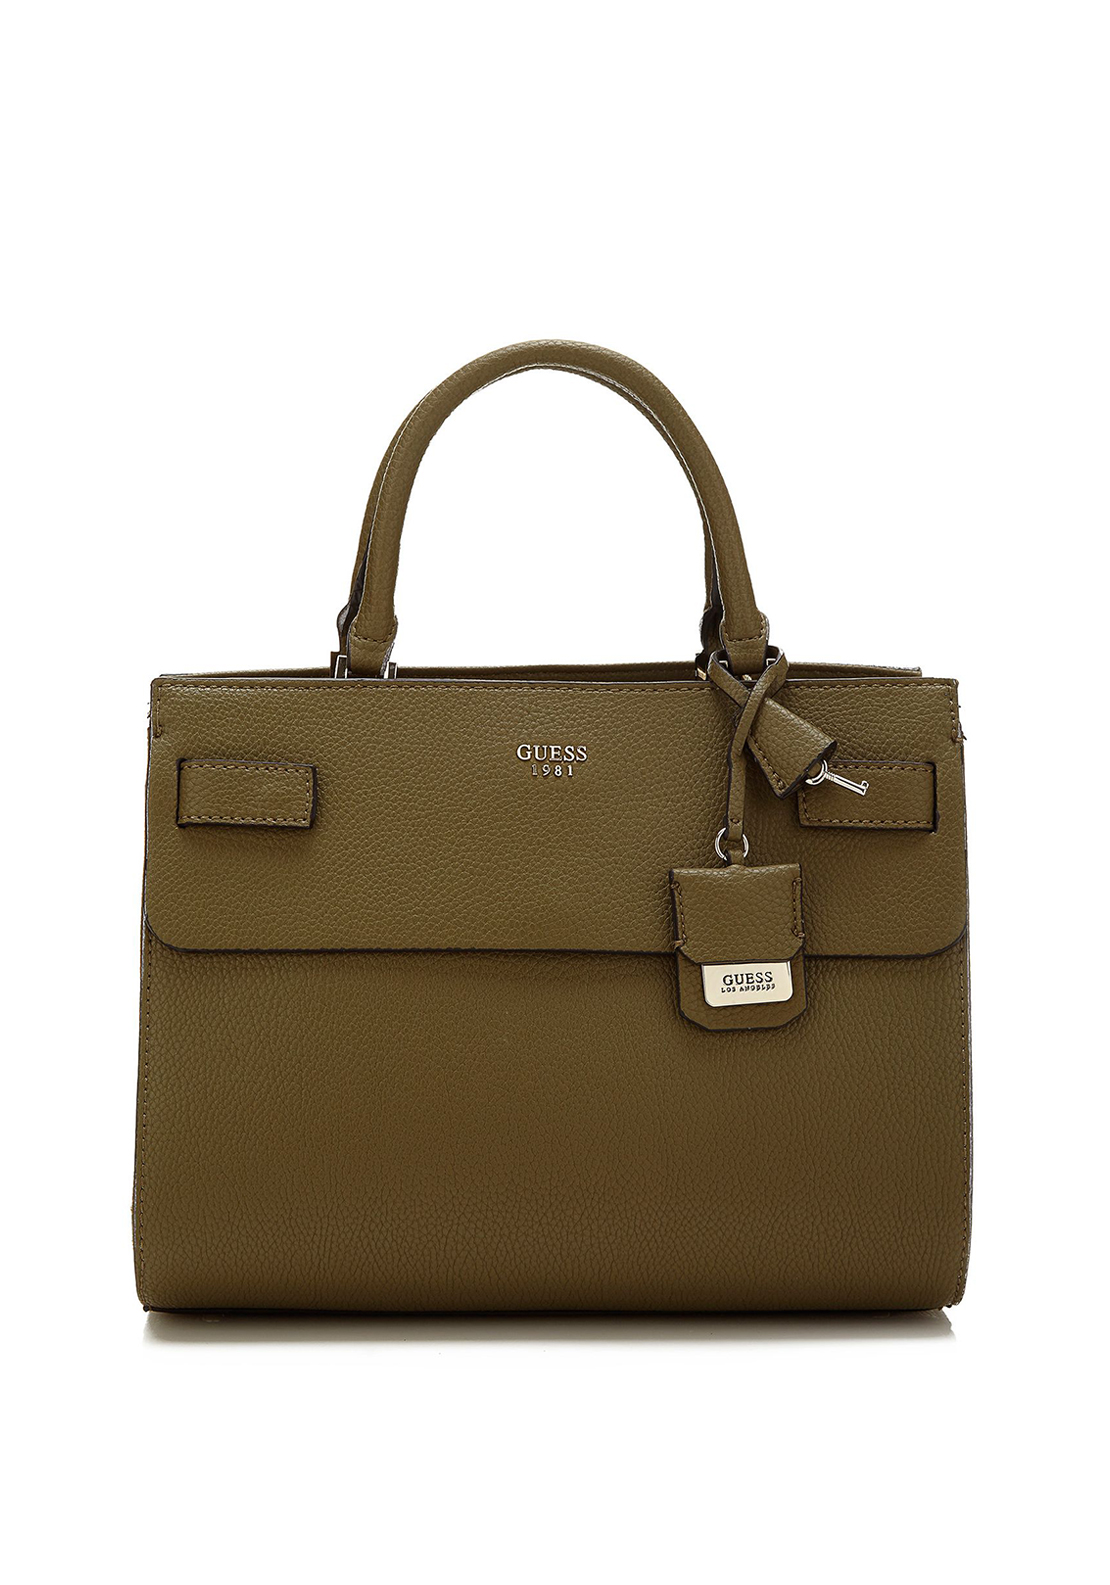 Guess Cate Tote Bag, Olive Green